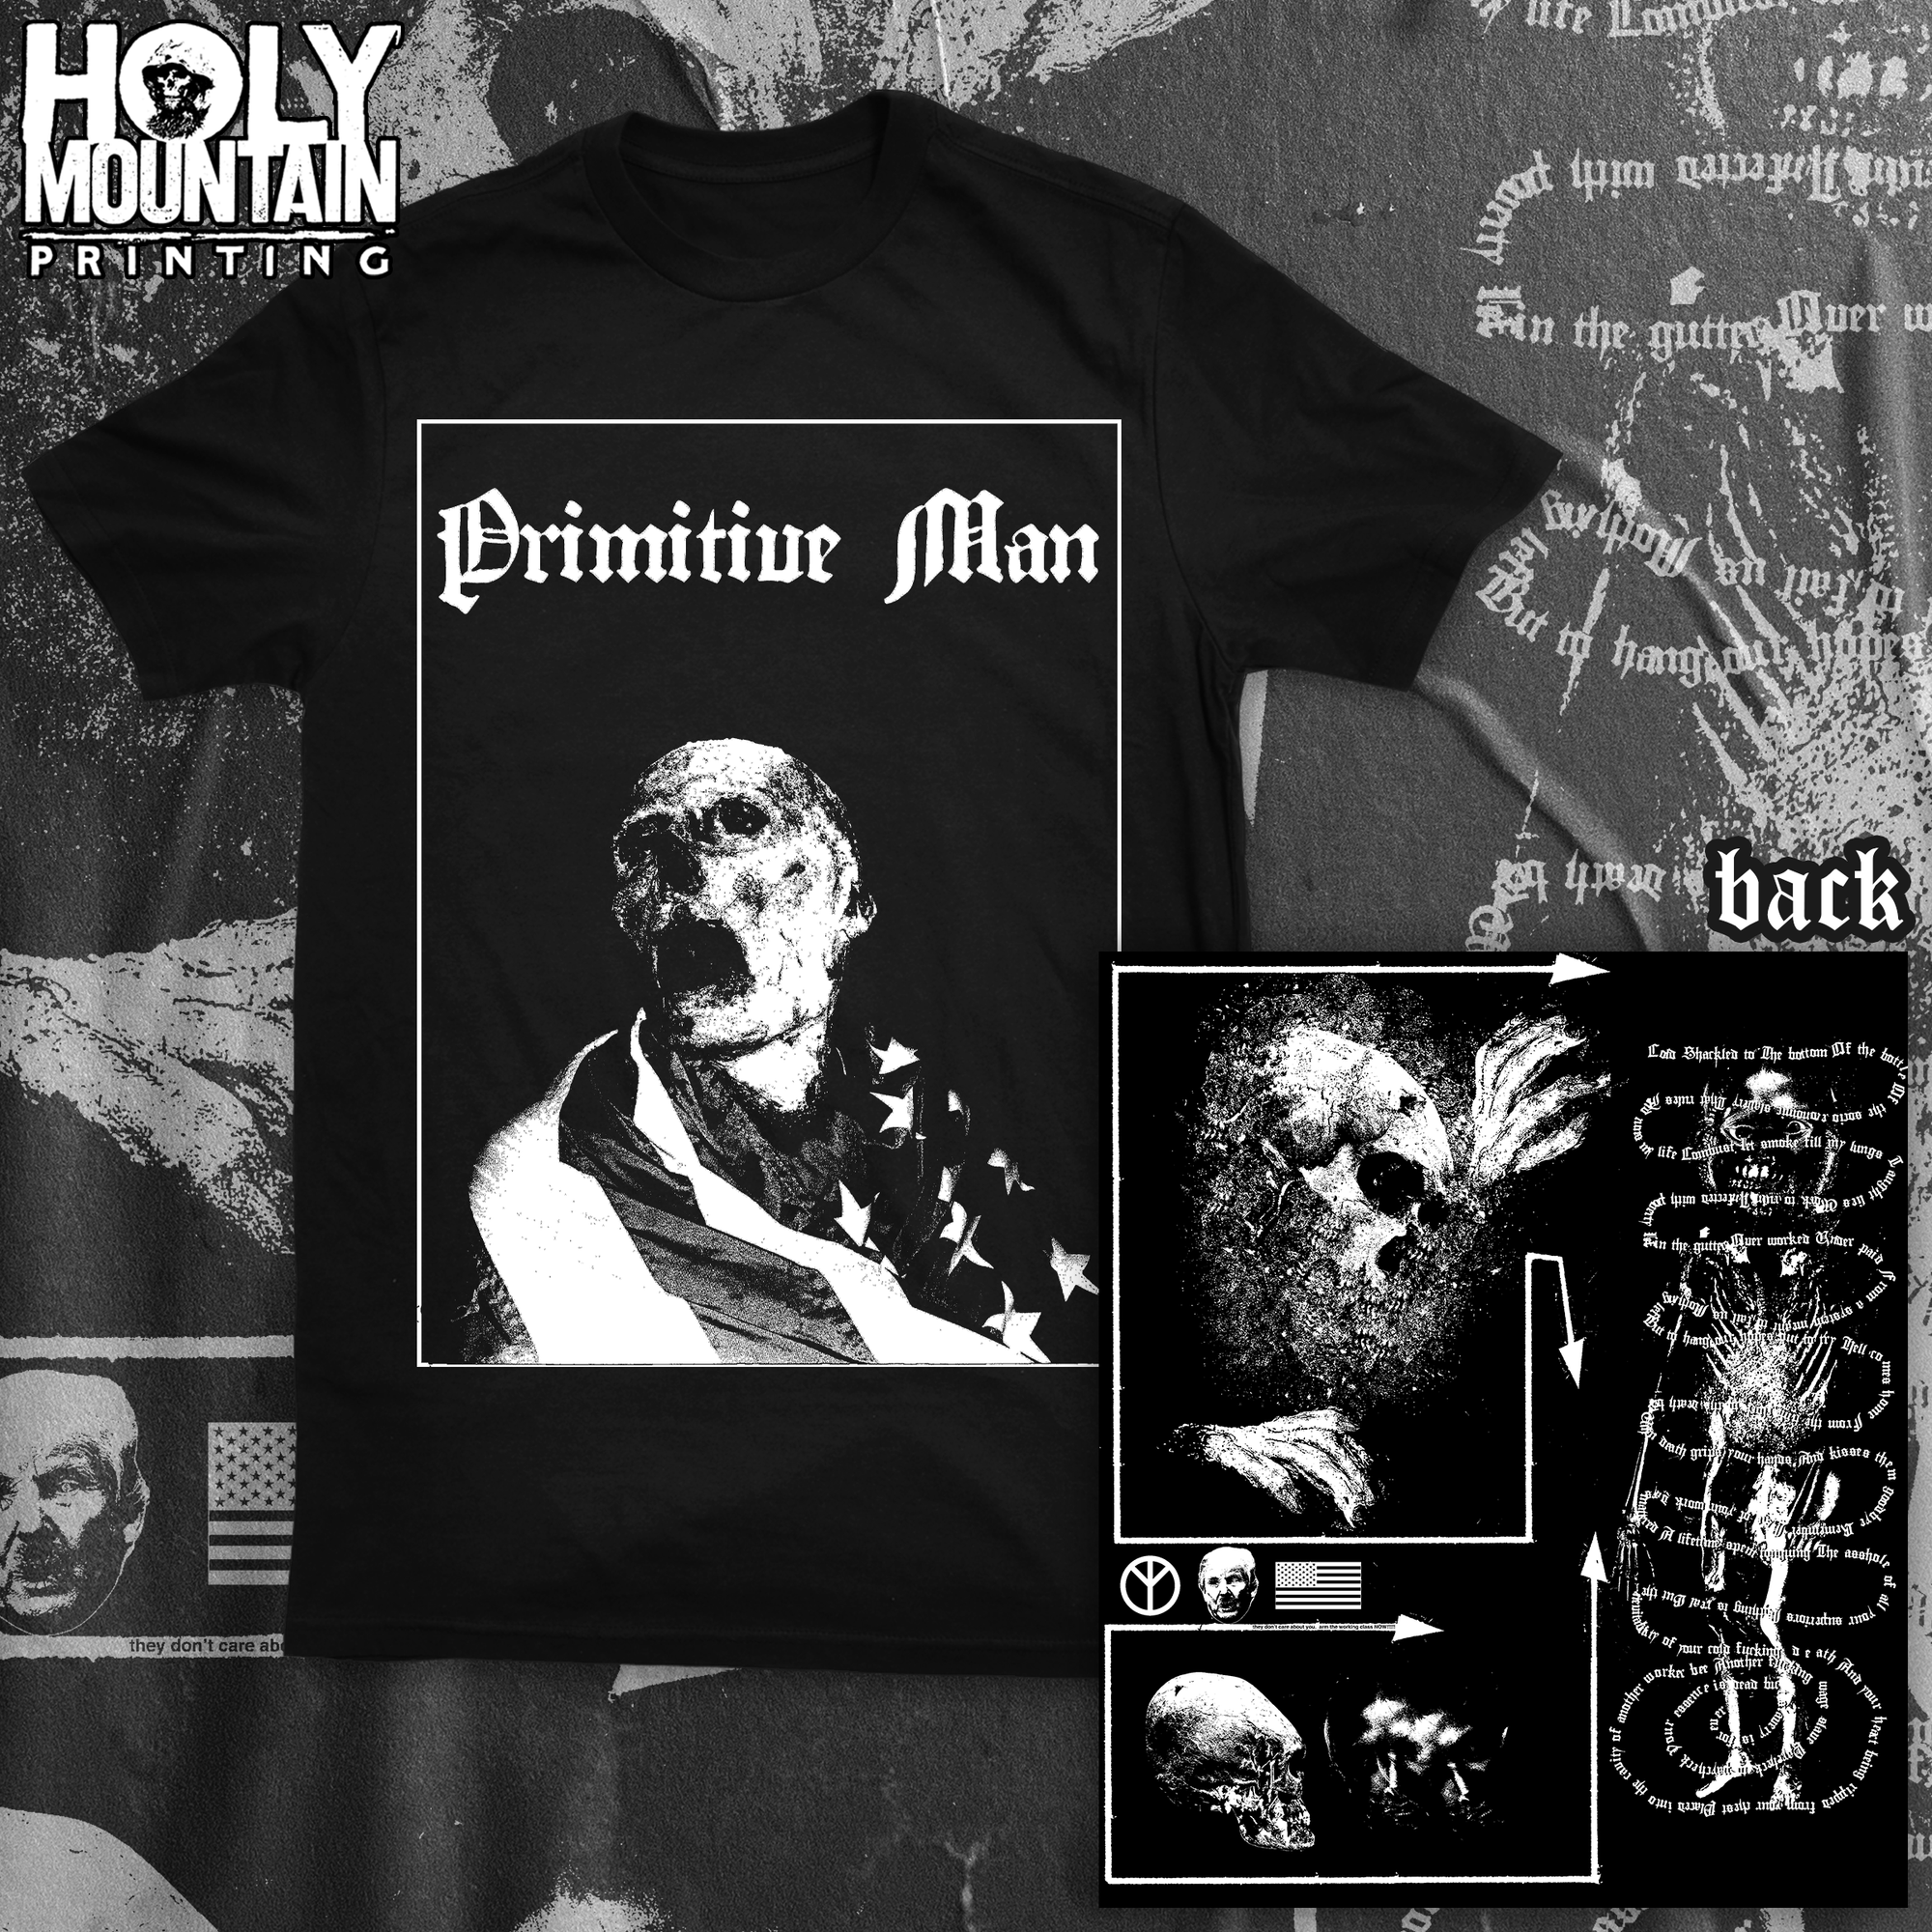 "PRIMITIVE MAN ""THEY DON'T CARE"" SHIRT"